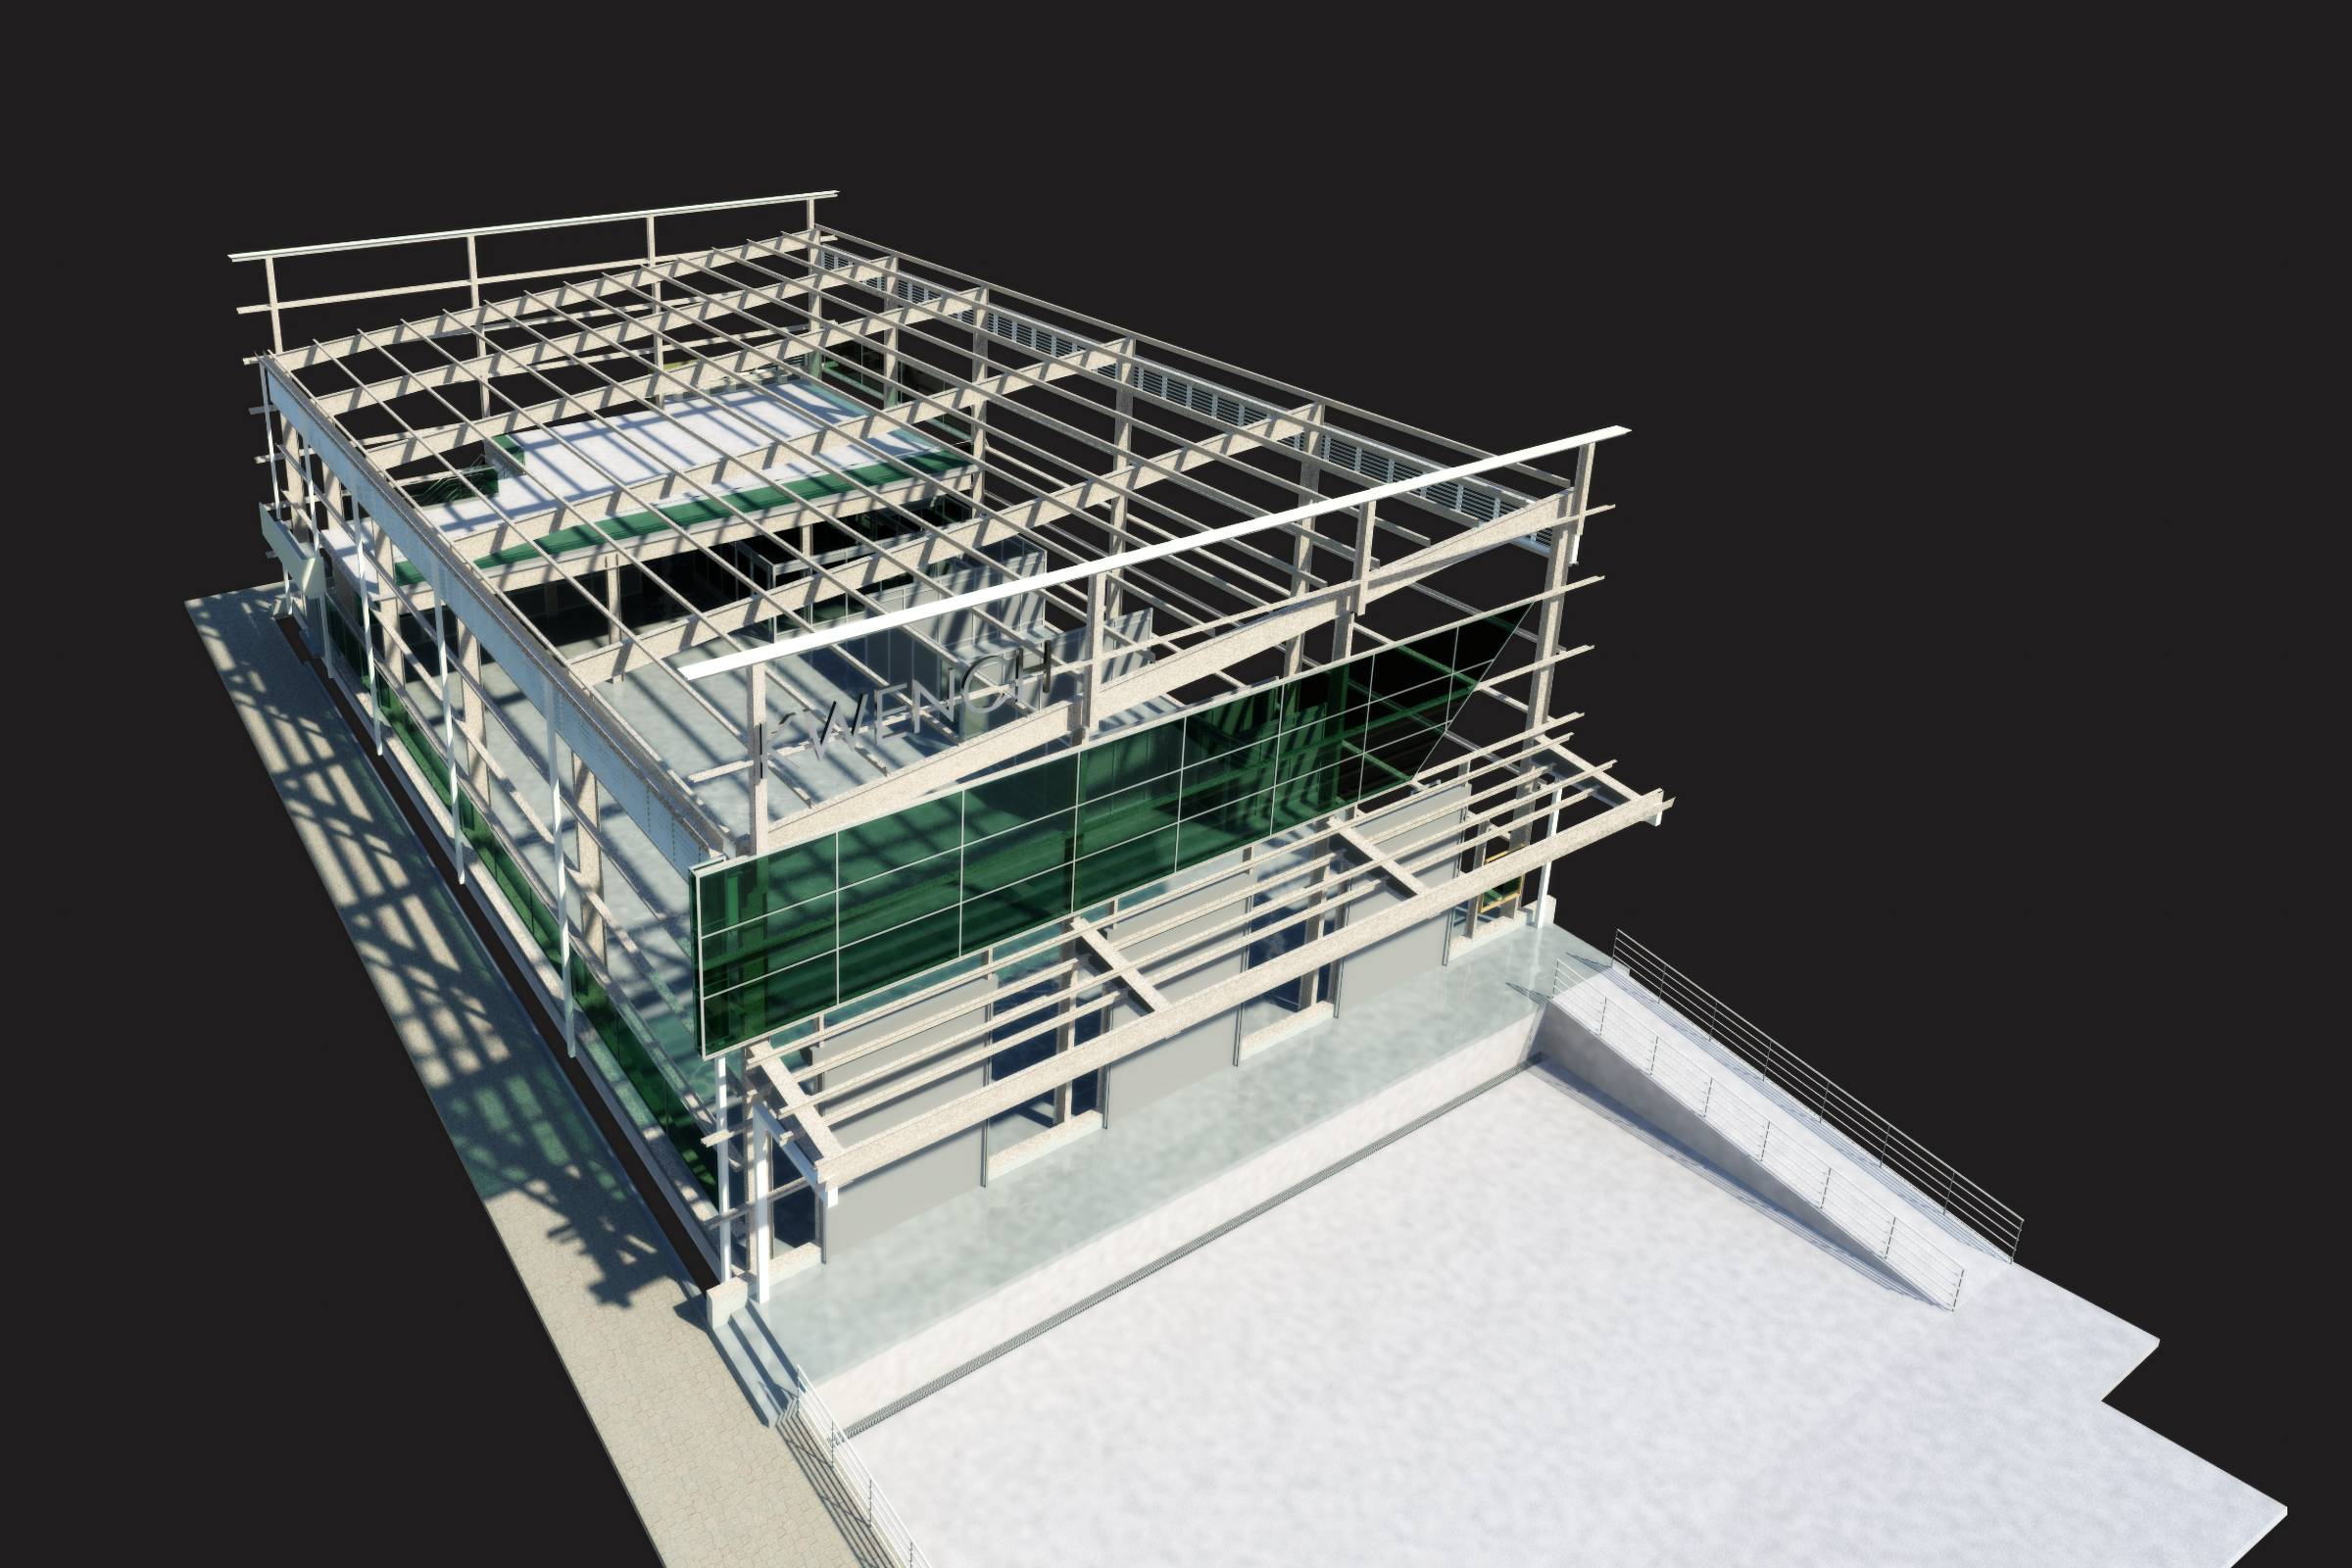 Kwench Plant Aerial BIM Structural view